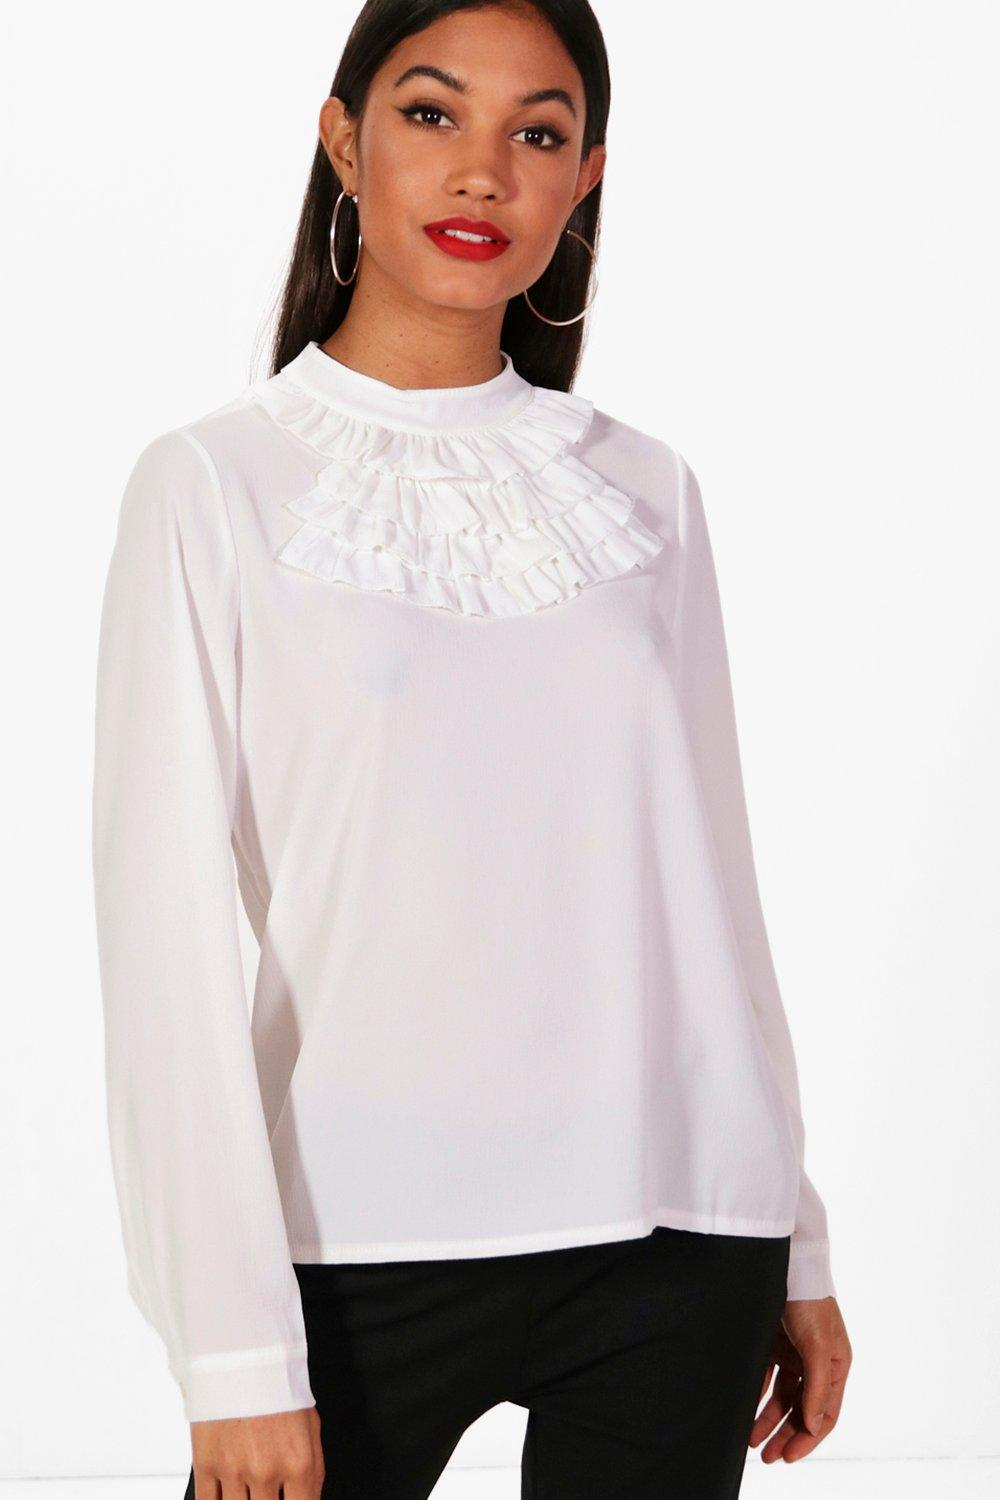 971e1e870c307 High Neck Ruffle Collar Blouse. Hover to zoom